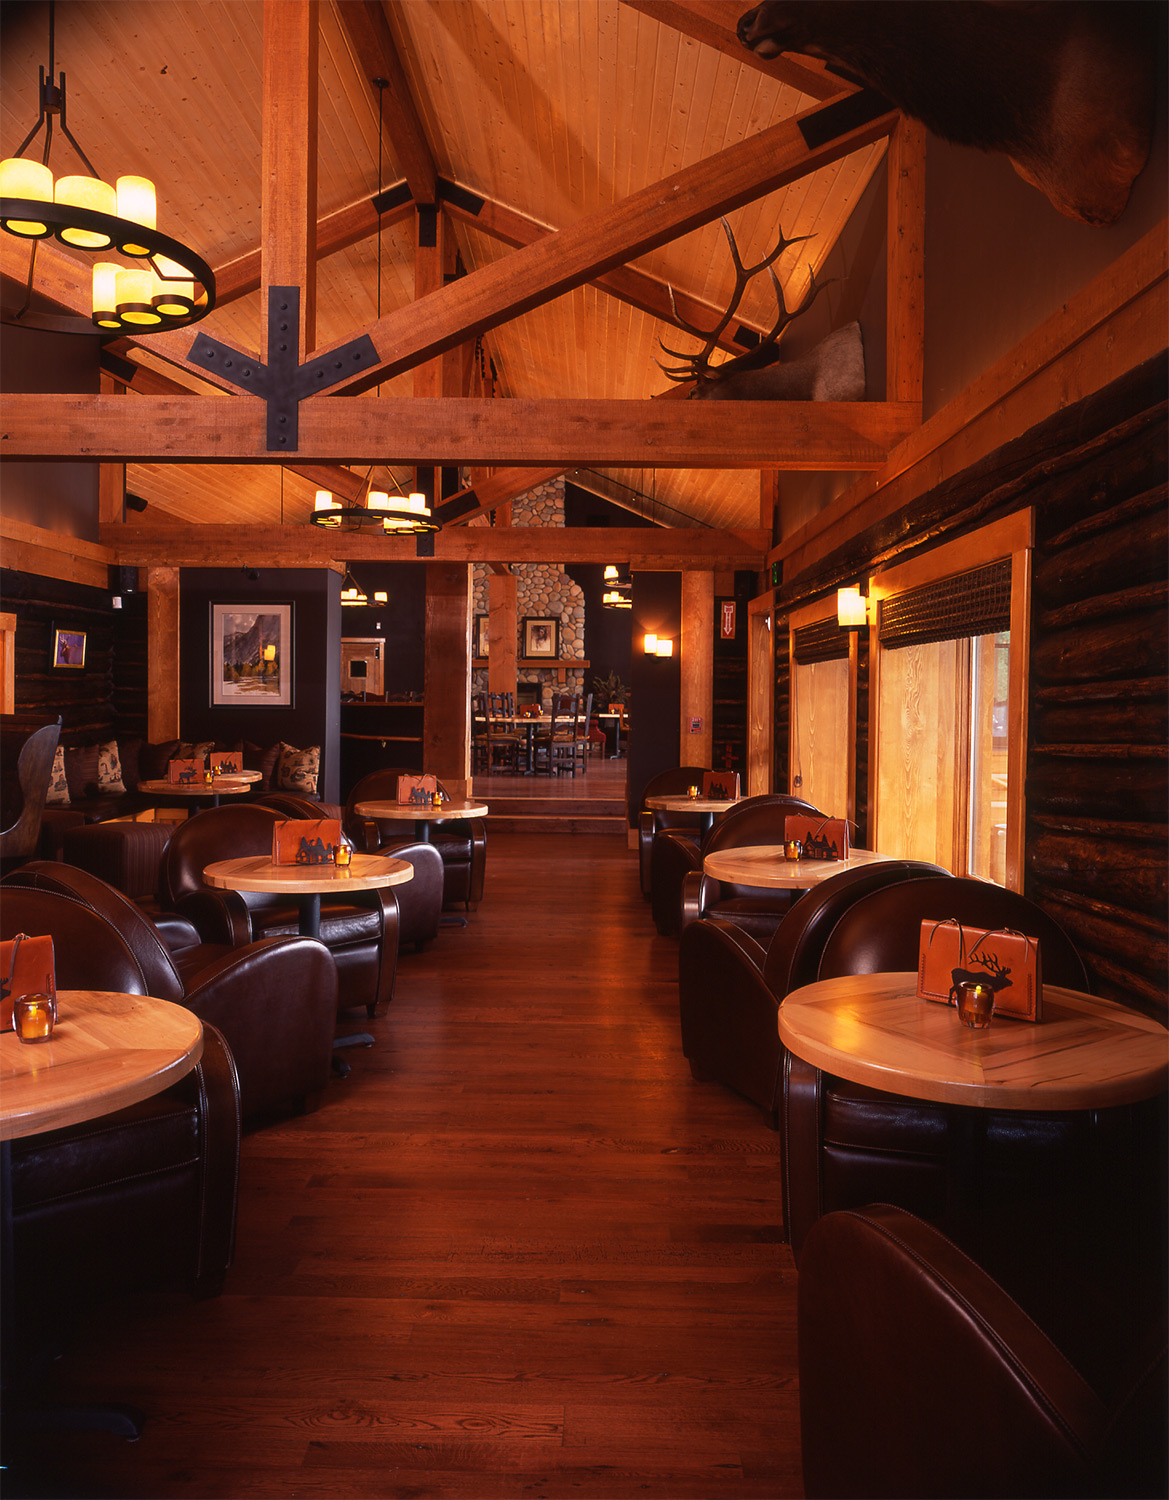 wyoming, wood, lake, lodge, leather, seating, dining room, rich textures, warm tone, rustic, western